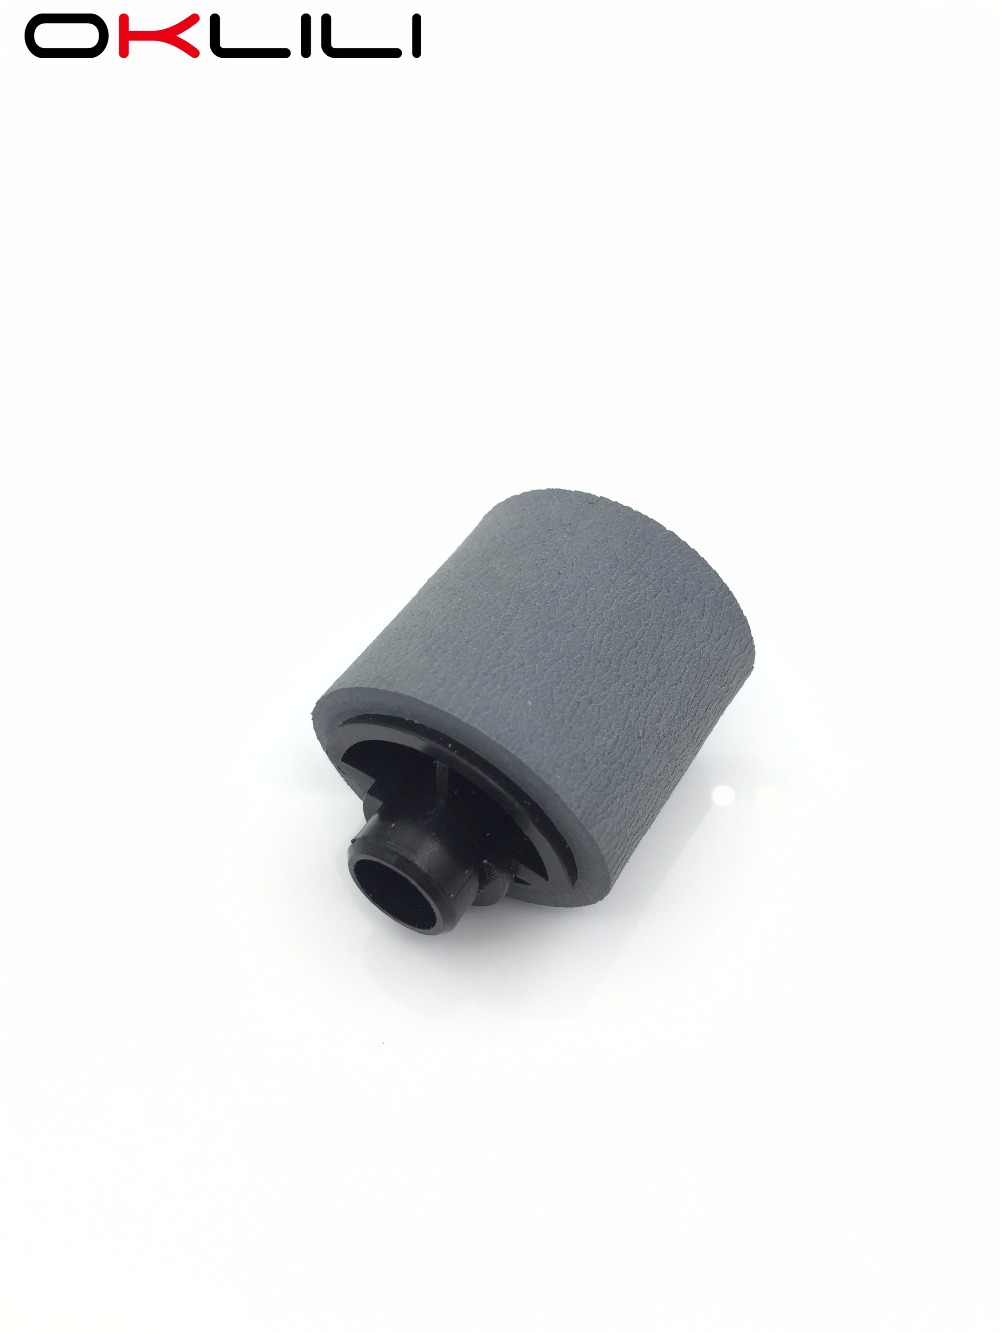 10X JC72-01231A Pickup Roller for Samsung ML1510 1710 1740 1750 2250 SCX4016 4116 4100 4200 4220 4300 4500 4520 4720 SF560 SF565 10pcx jc72 01231a pickup roller for samsung ml1510 1710 1740 1750 2250 scx4016 4116 4100 4200 4220 4300 4500 4520 4720 sf560 565